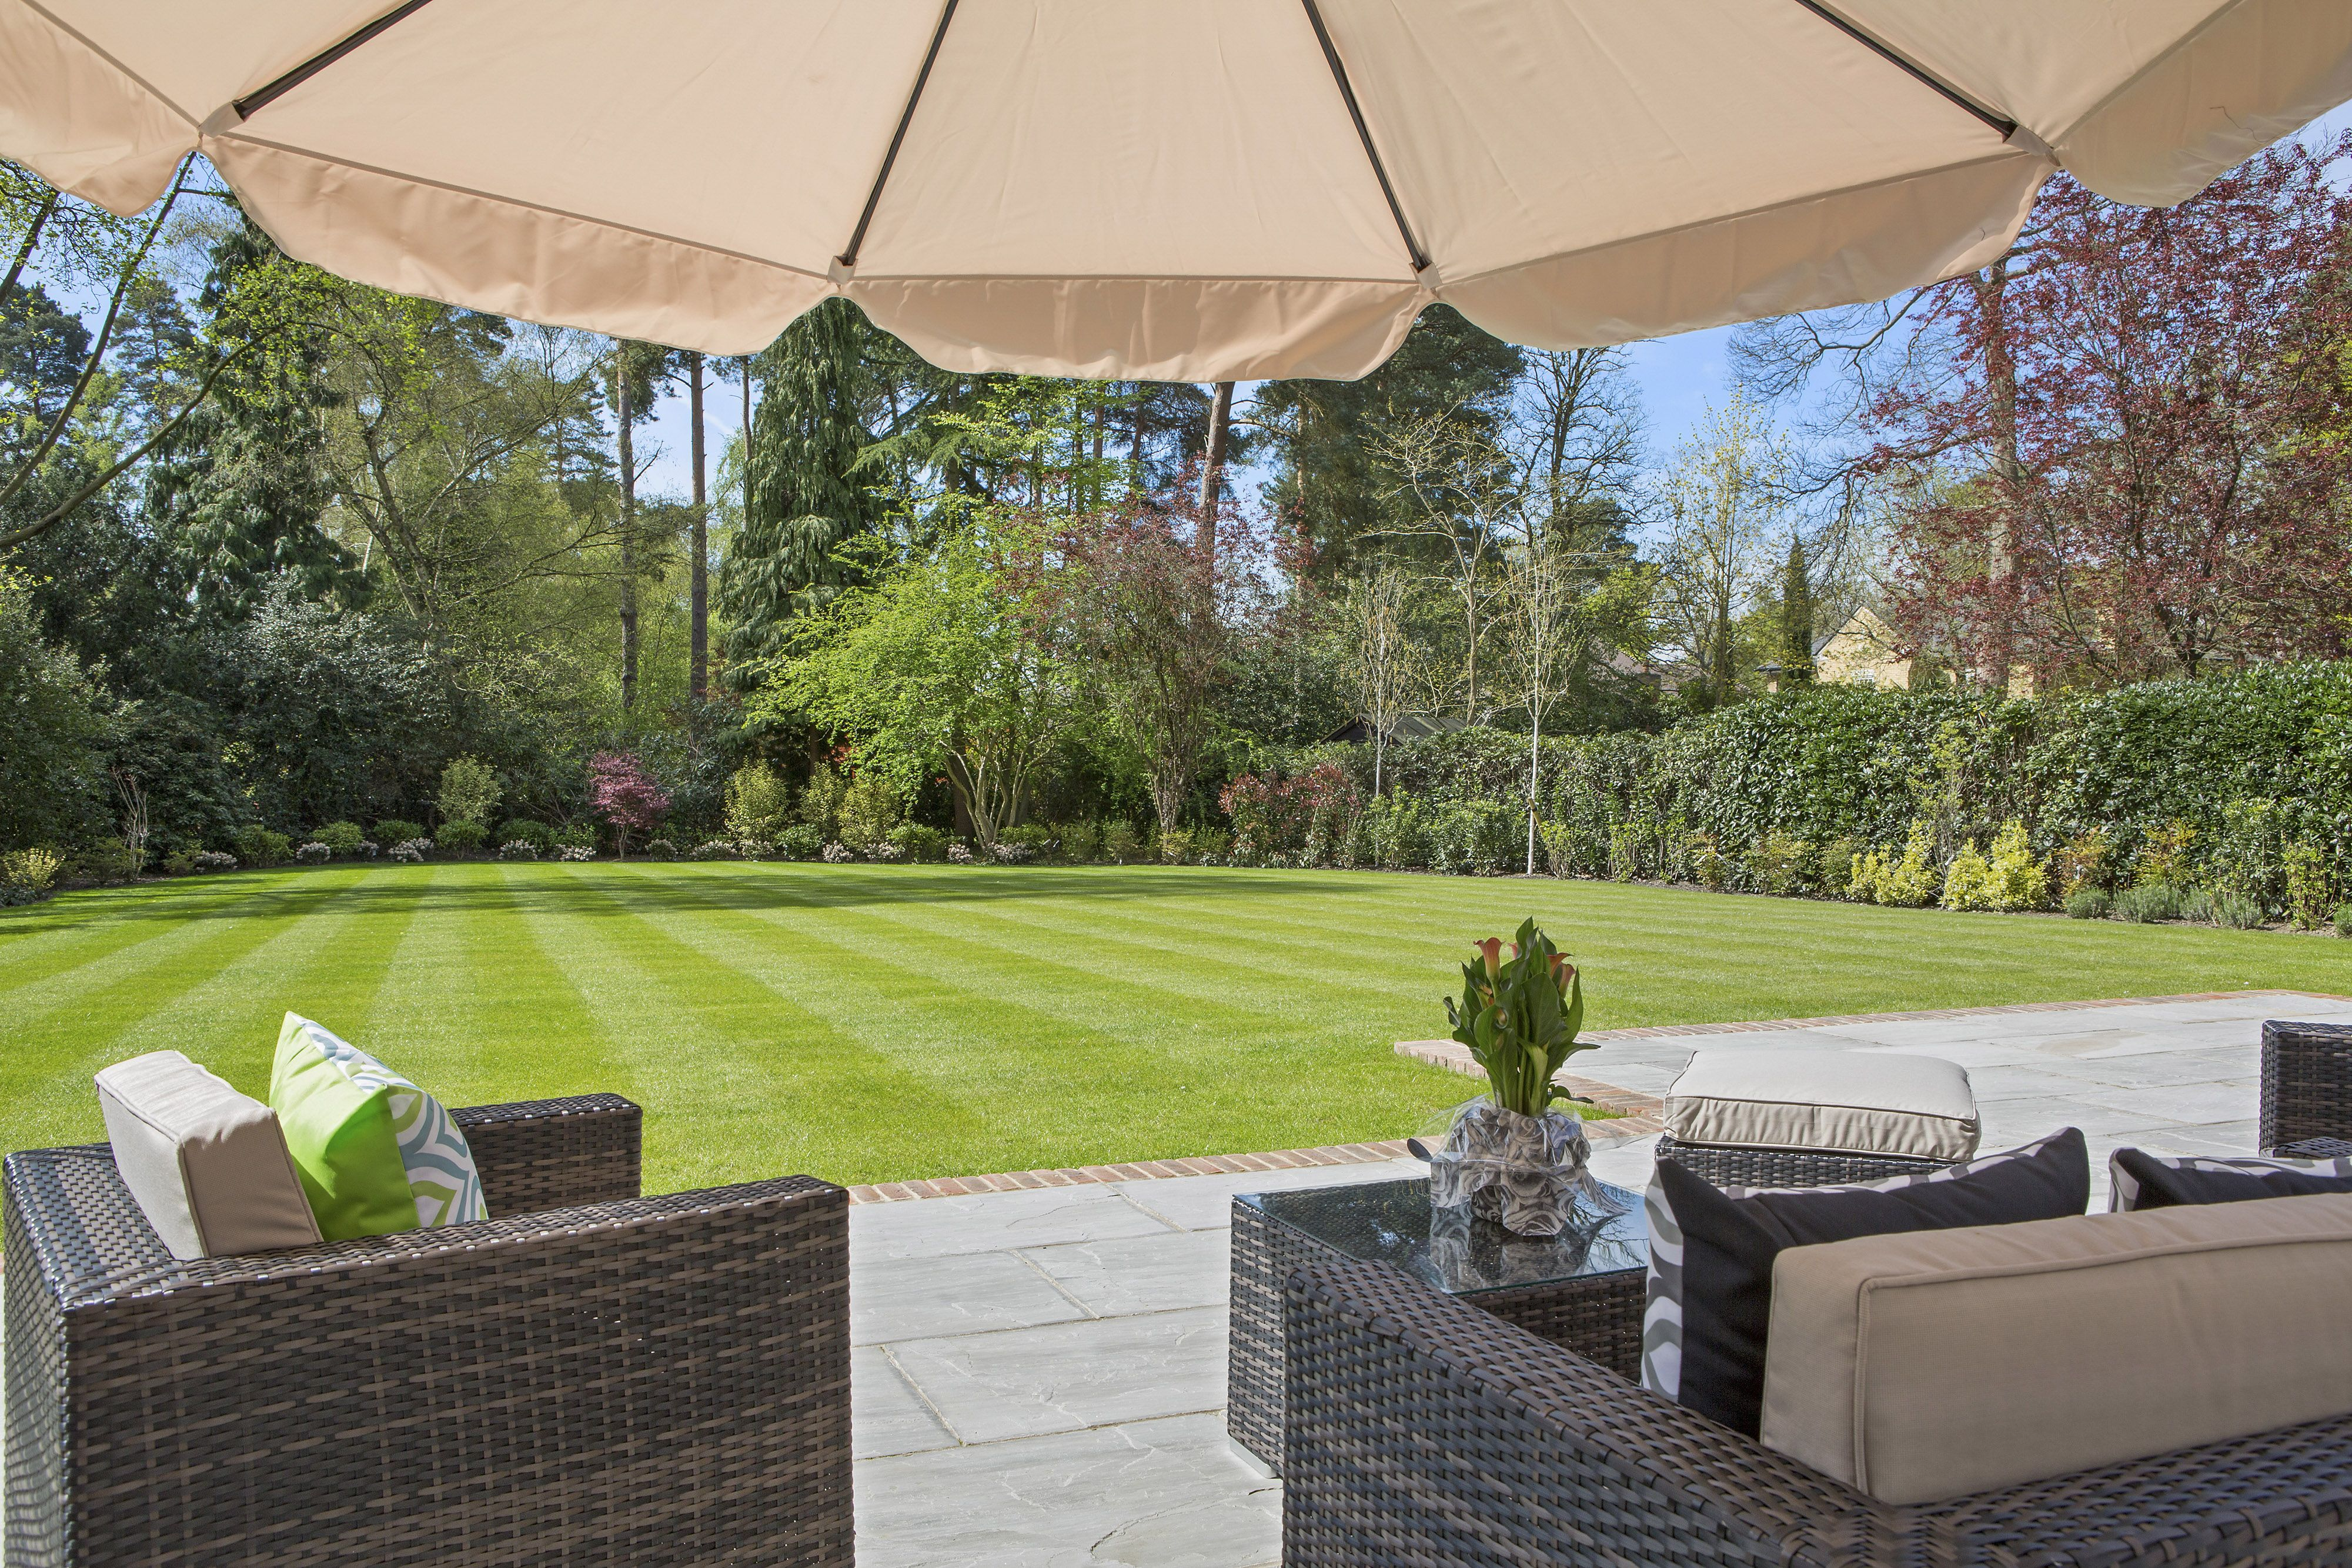 Photos of Earlswood House, Abbots Drive, Wentworth Estate, Virginia Water, Surrey GU25 - 39620643 - Zoopla